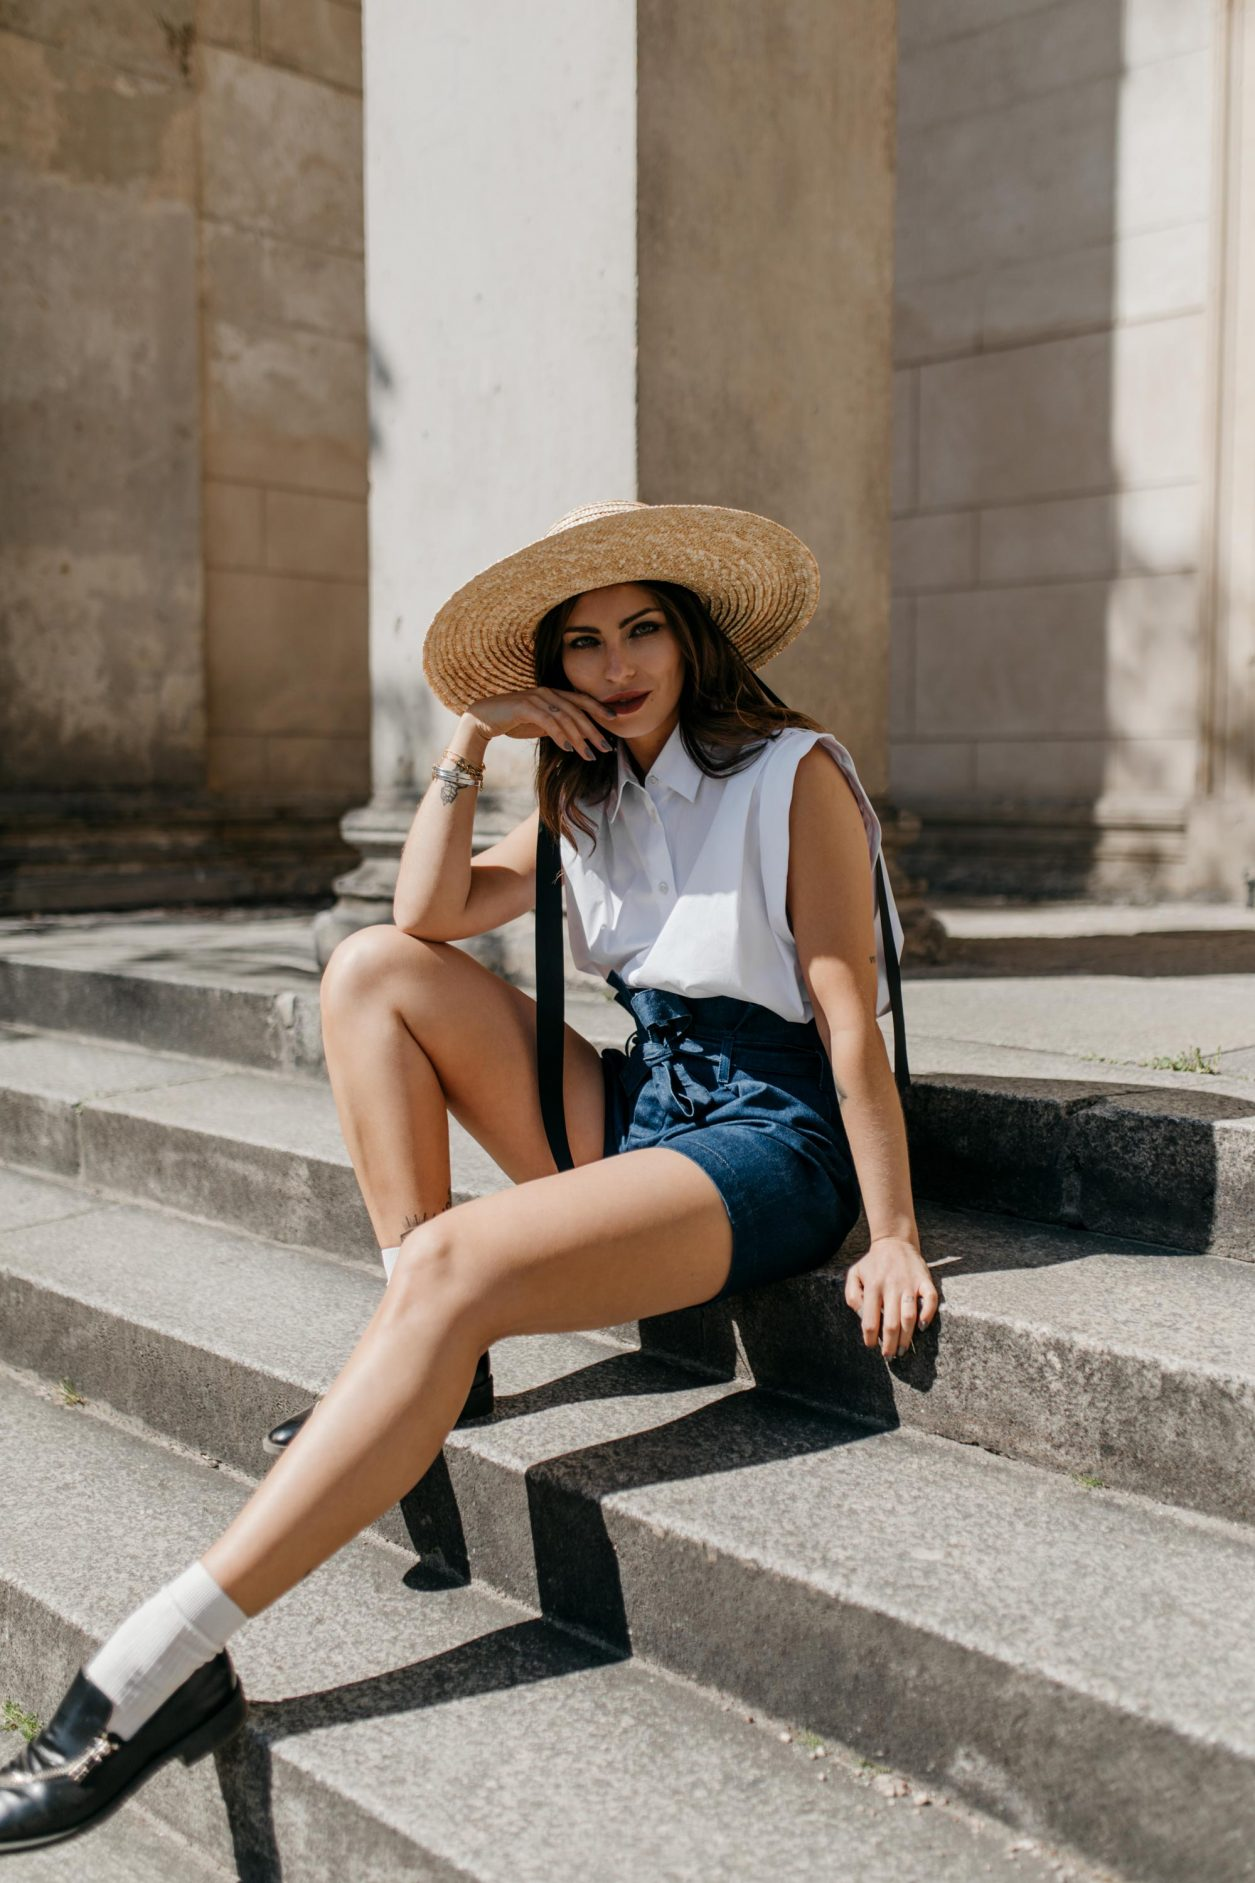 Anzeige | Streetstyle by Masha Sedgwick | Fashion blogger from Berlin, Germany | Spring summer outfit inspiration, minimalistic, english style, effortless cool | Wearing paperbag shorts and sleeveless white blouse by 7 for all mankind, vintage short Burberry coat, straw hat, white socks with black leather loafers